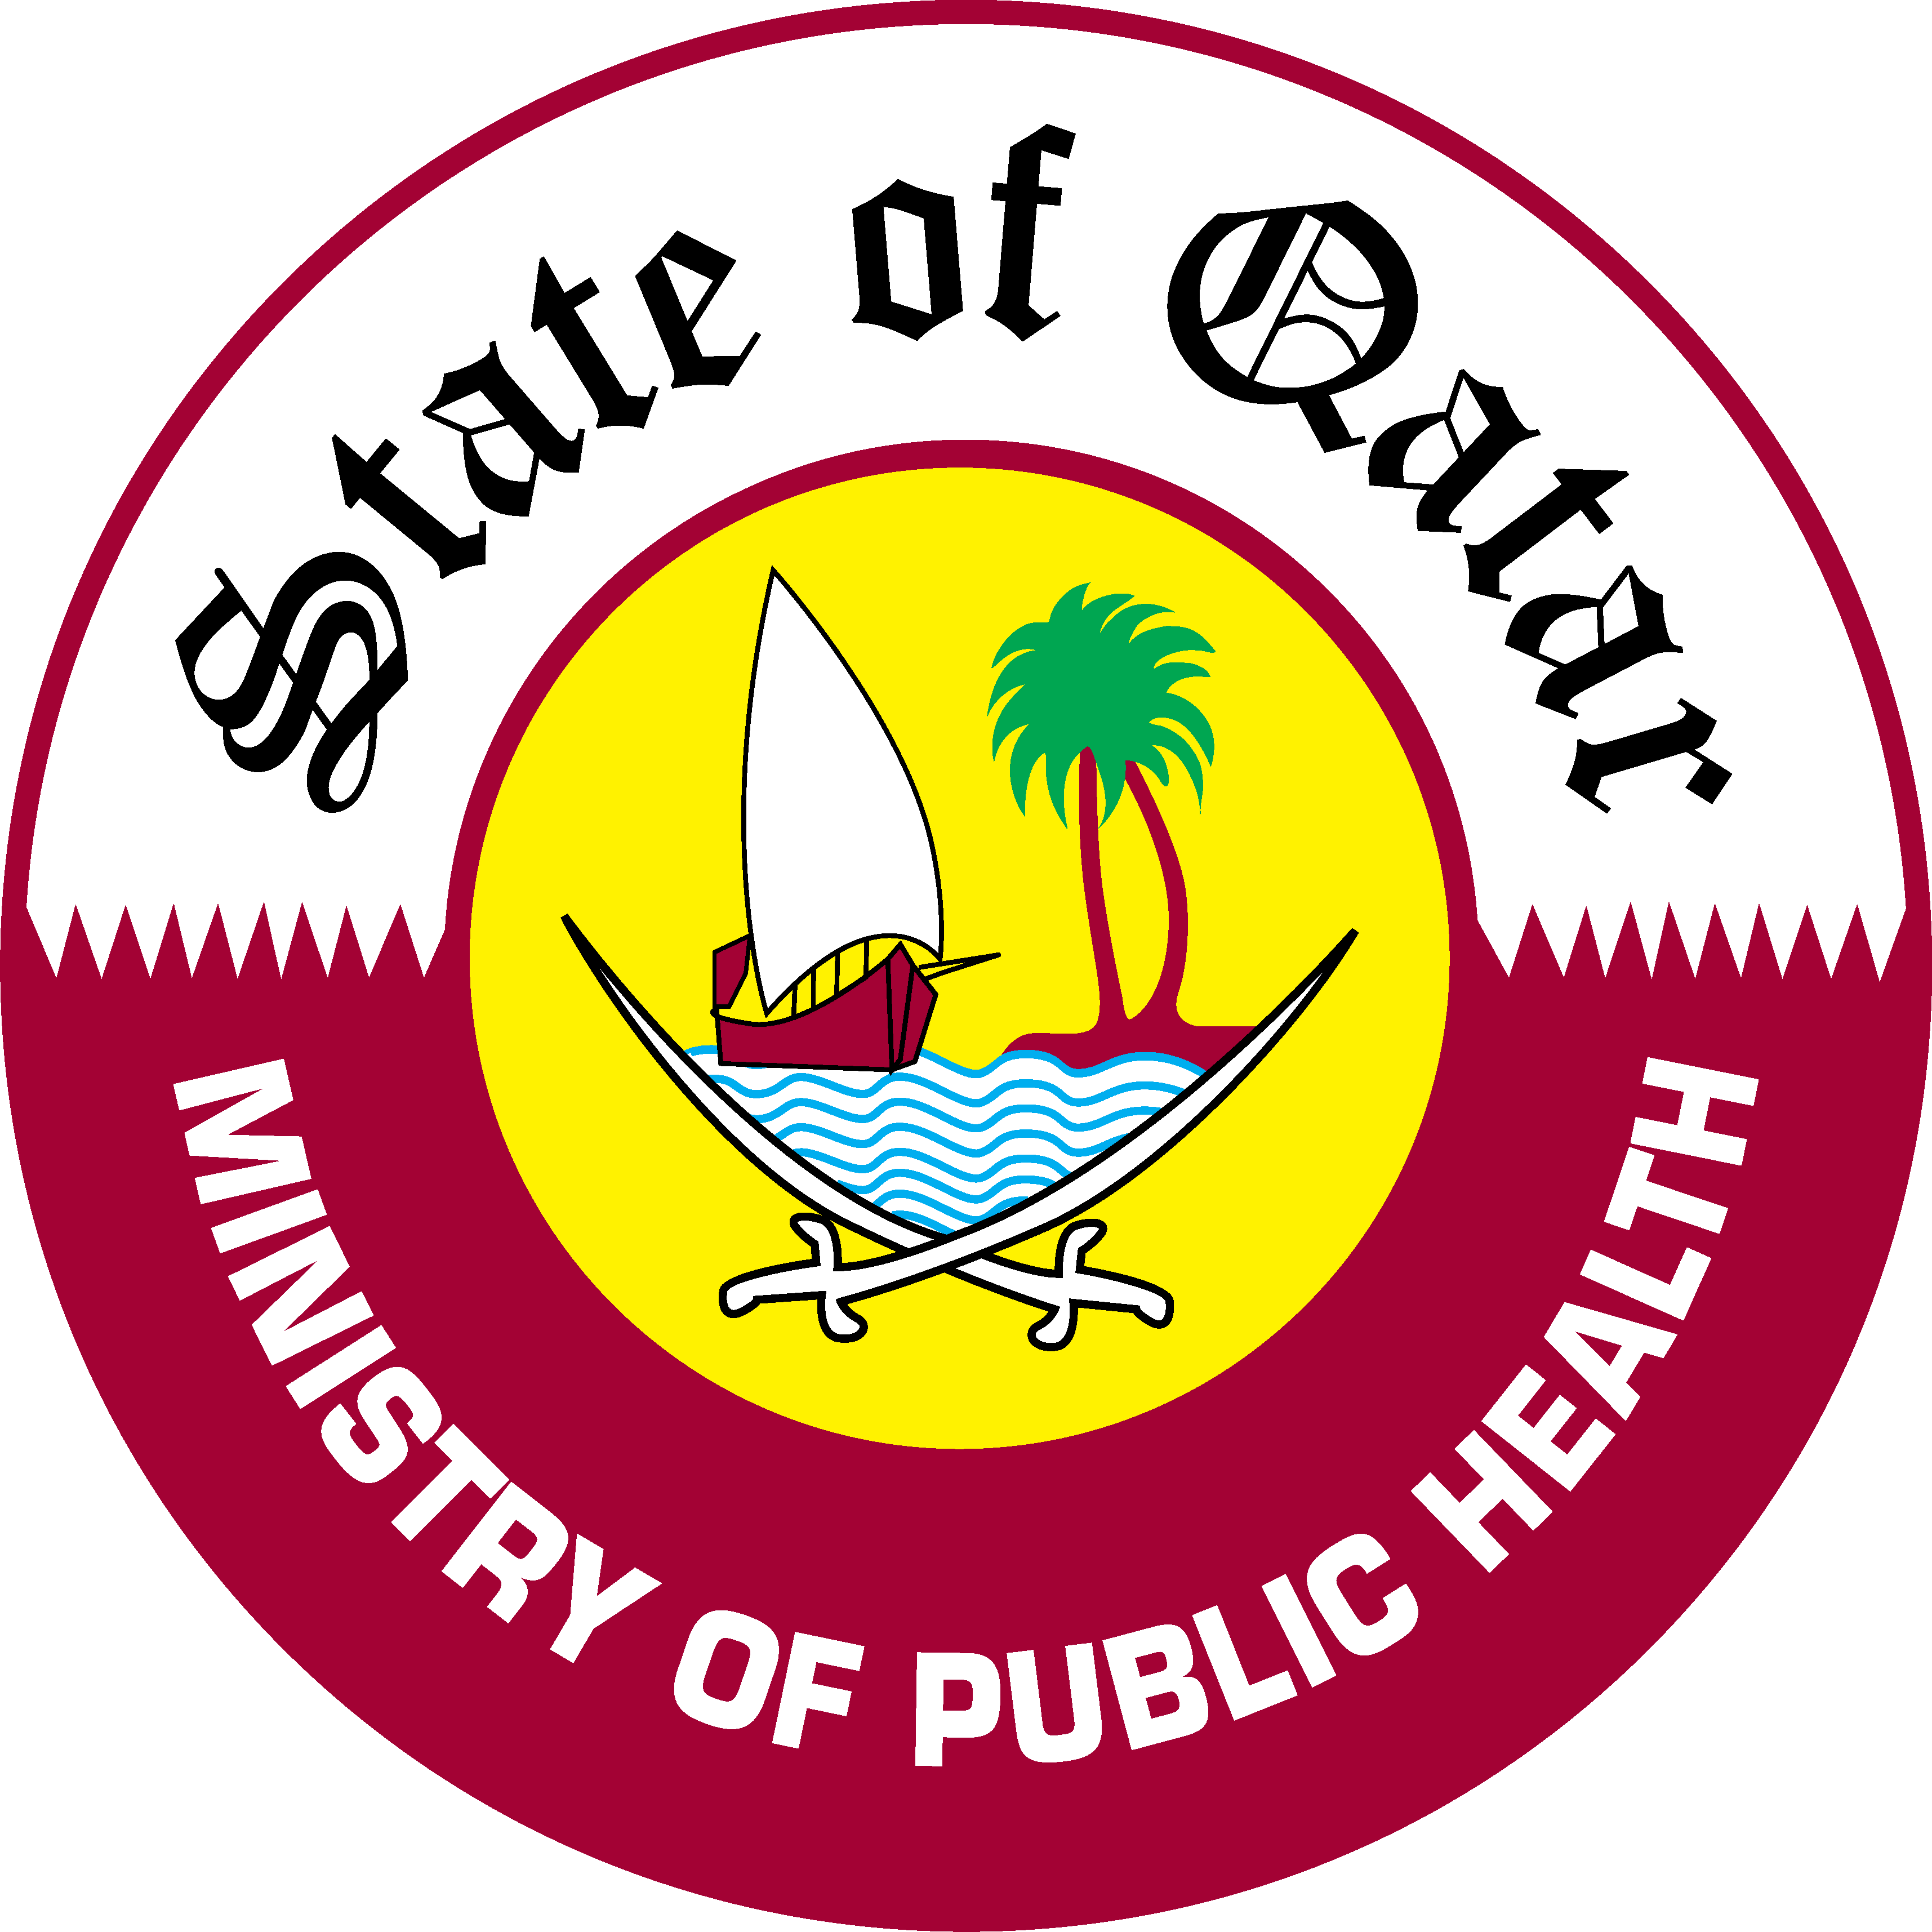 Qatar Council for Healthcare Practitioners (QCHP)